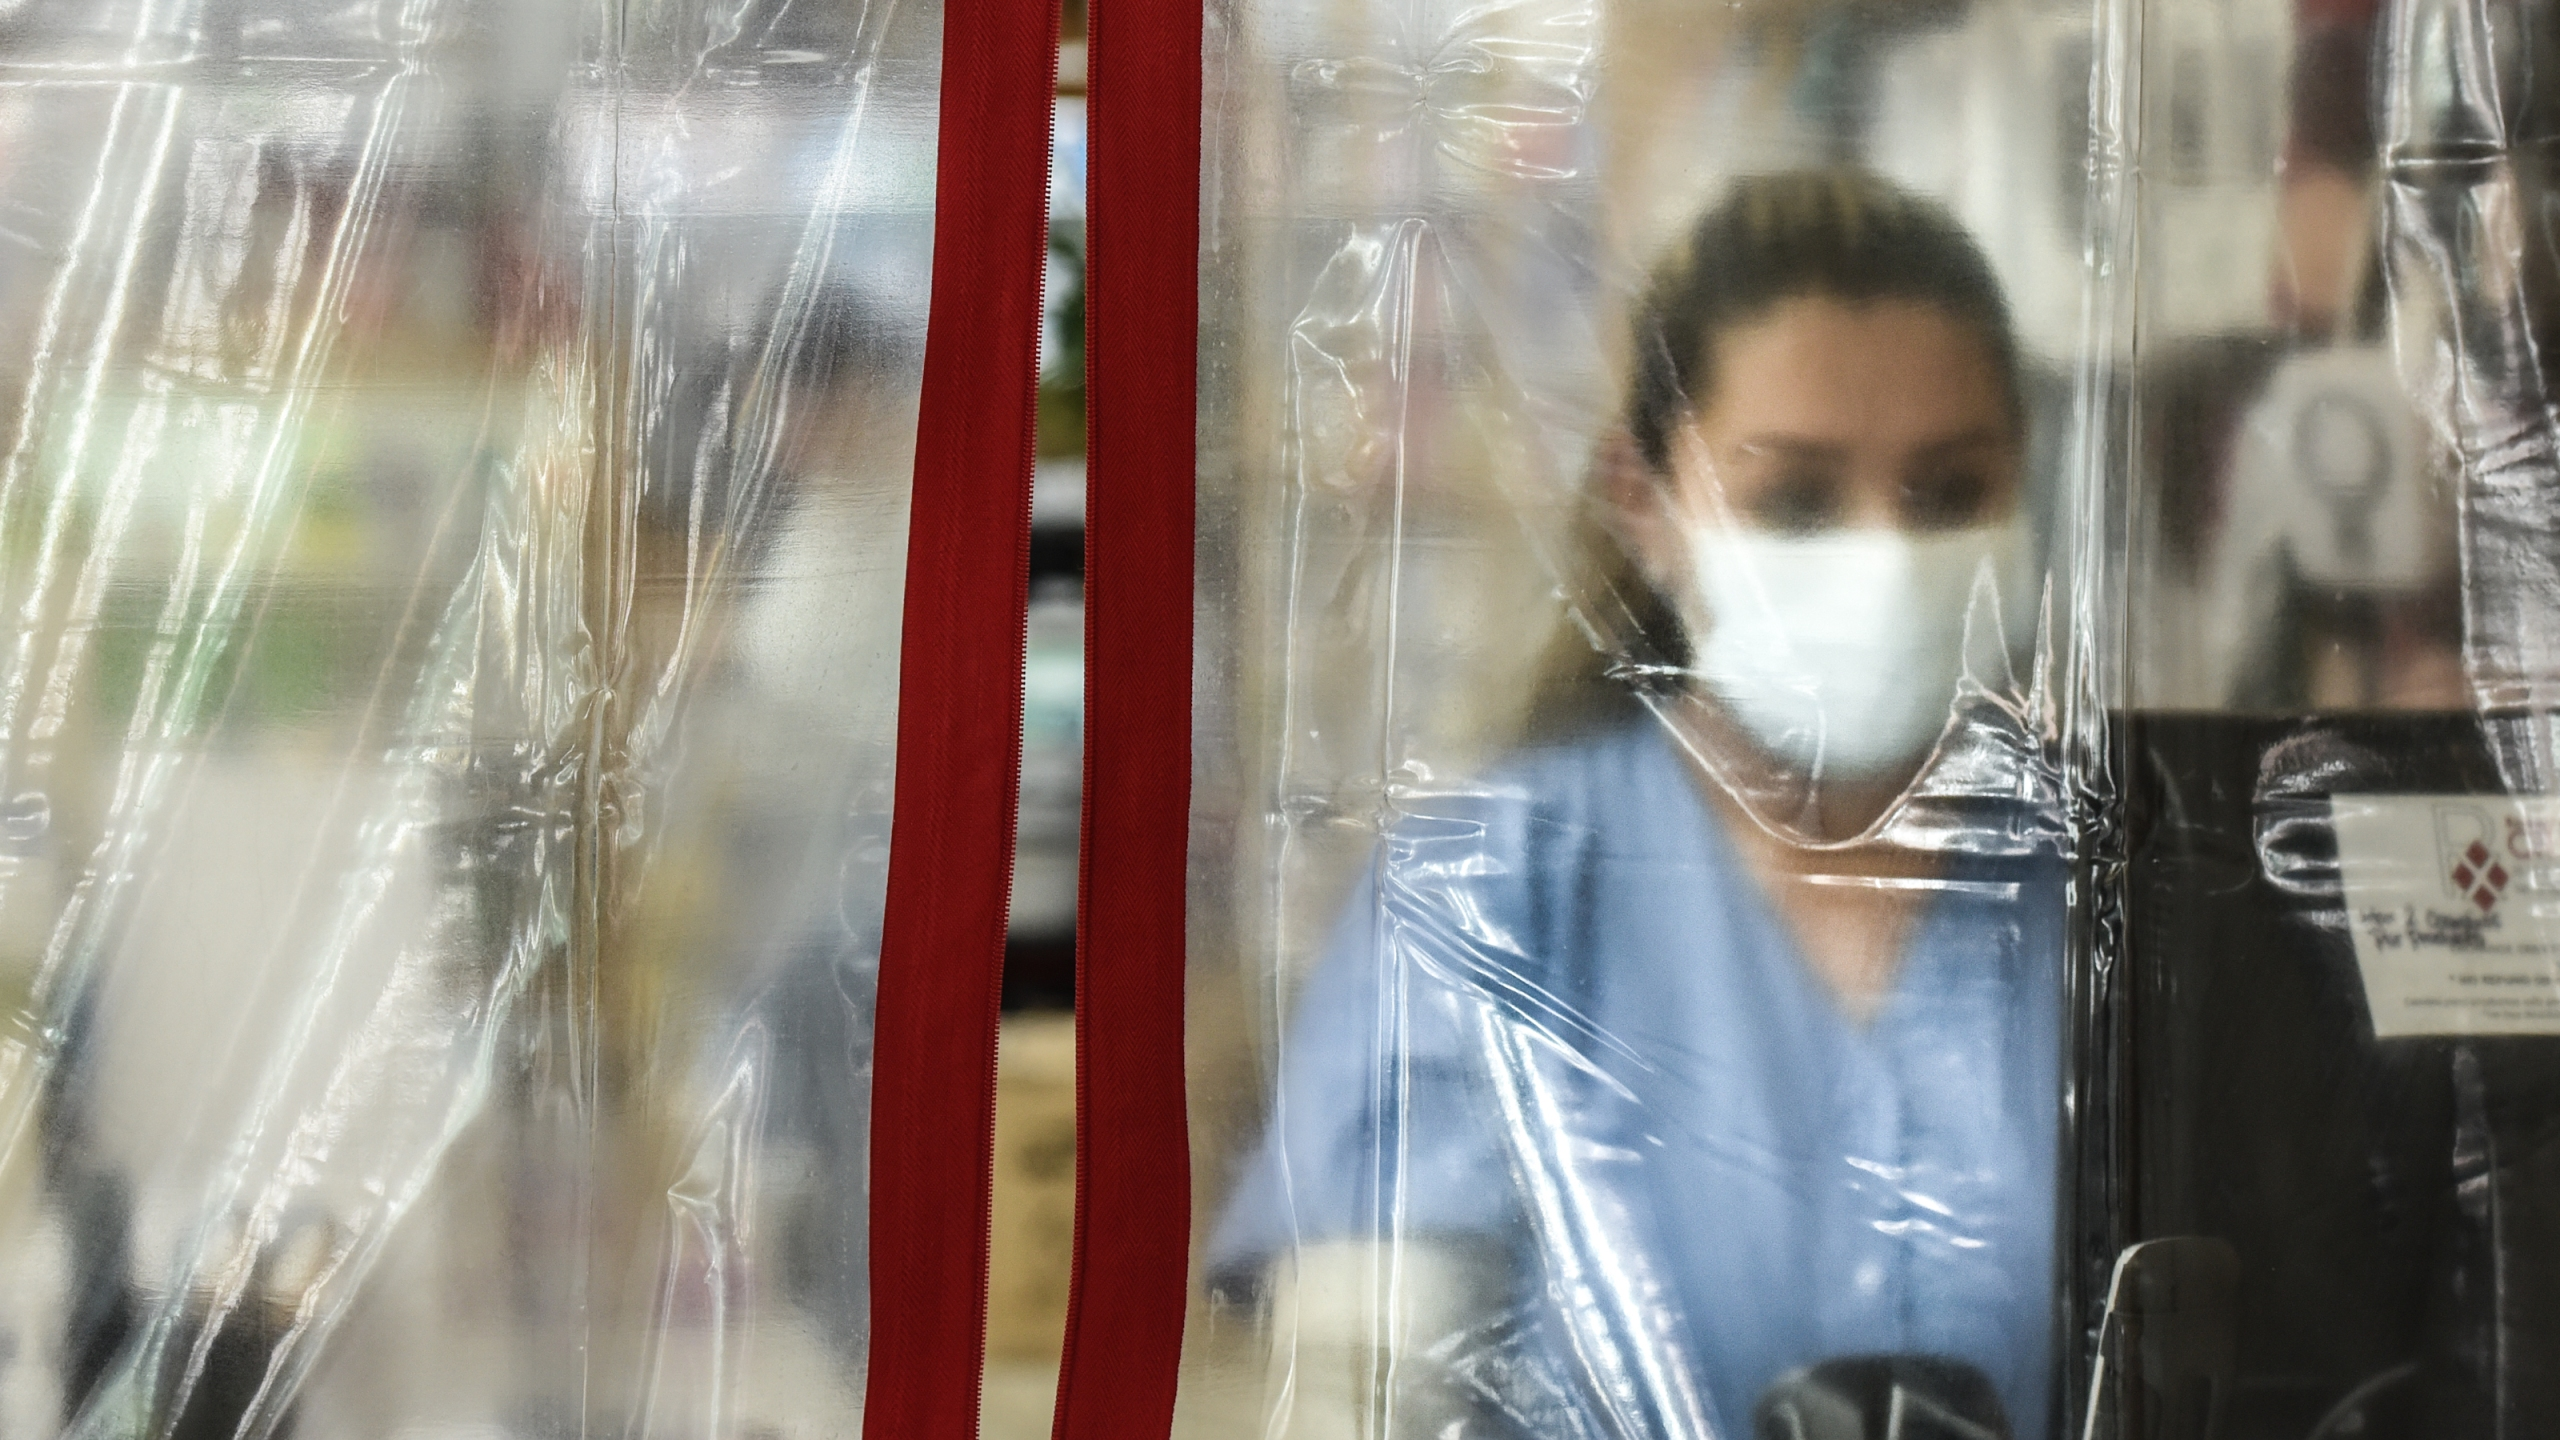 A pharmacist works behind plastic sheeting while wearing personal protective equipment in the Elmhurst neighborhood on April 1, 2020, in New York City. (Stephanie Keith/Getty Images)